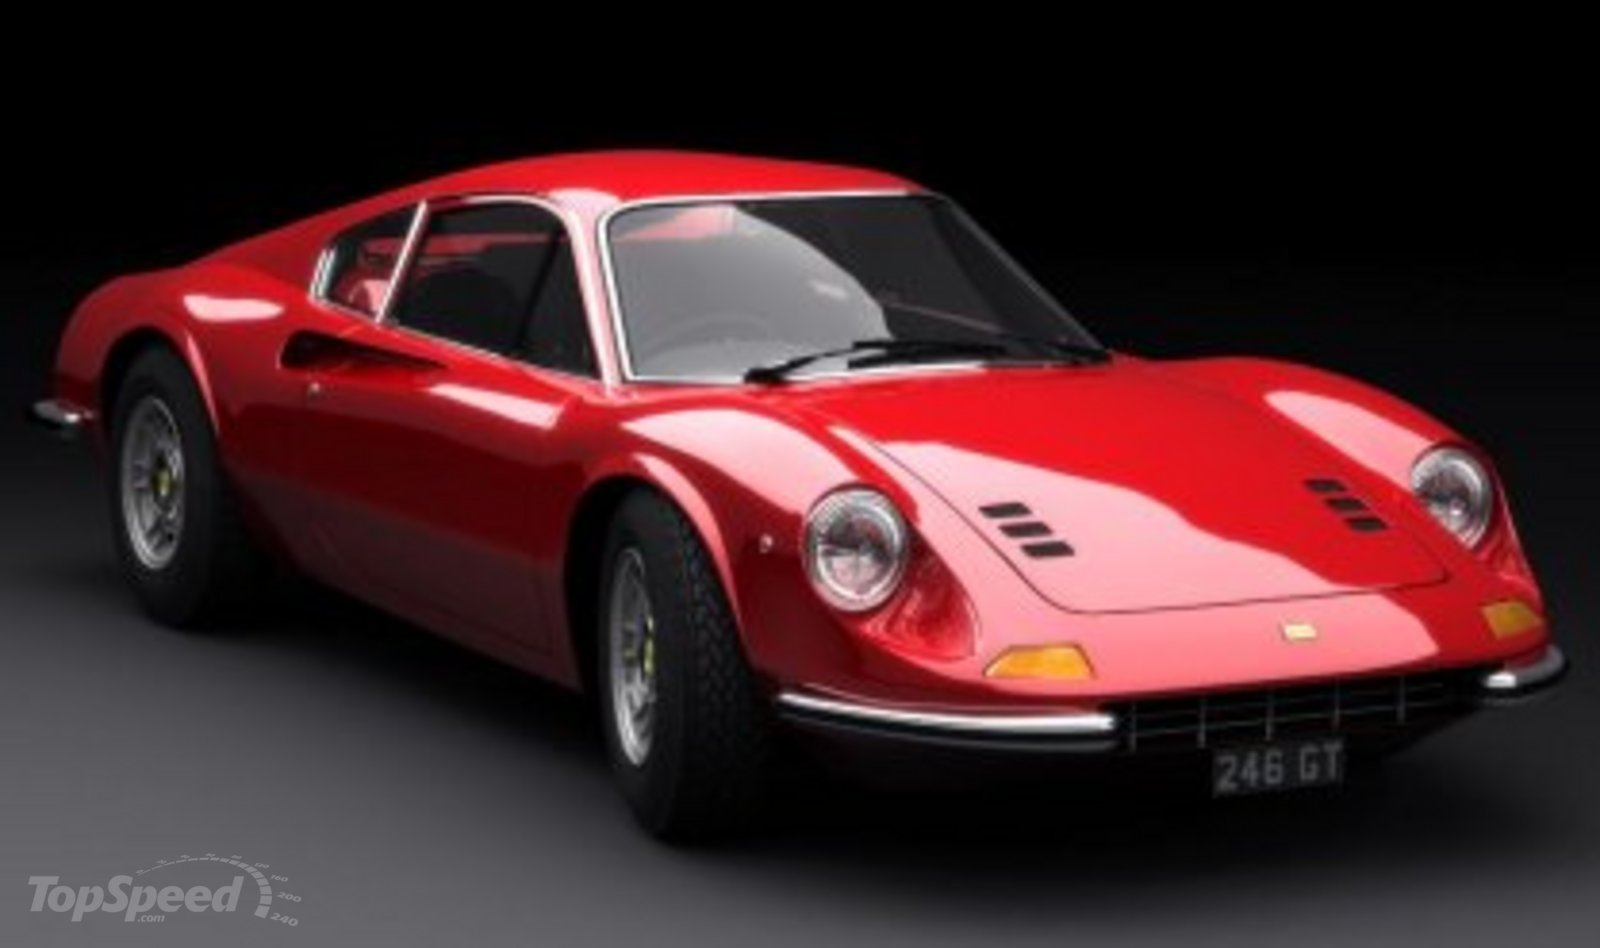 1969 1974 ferrari dino 246 gt review gallery top speed. Black Bedroom Furniture Sets. Home Design Ideas